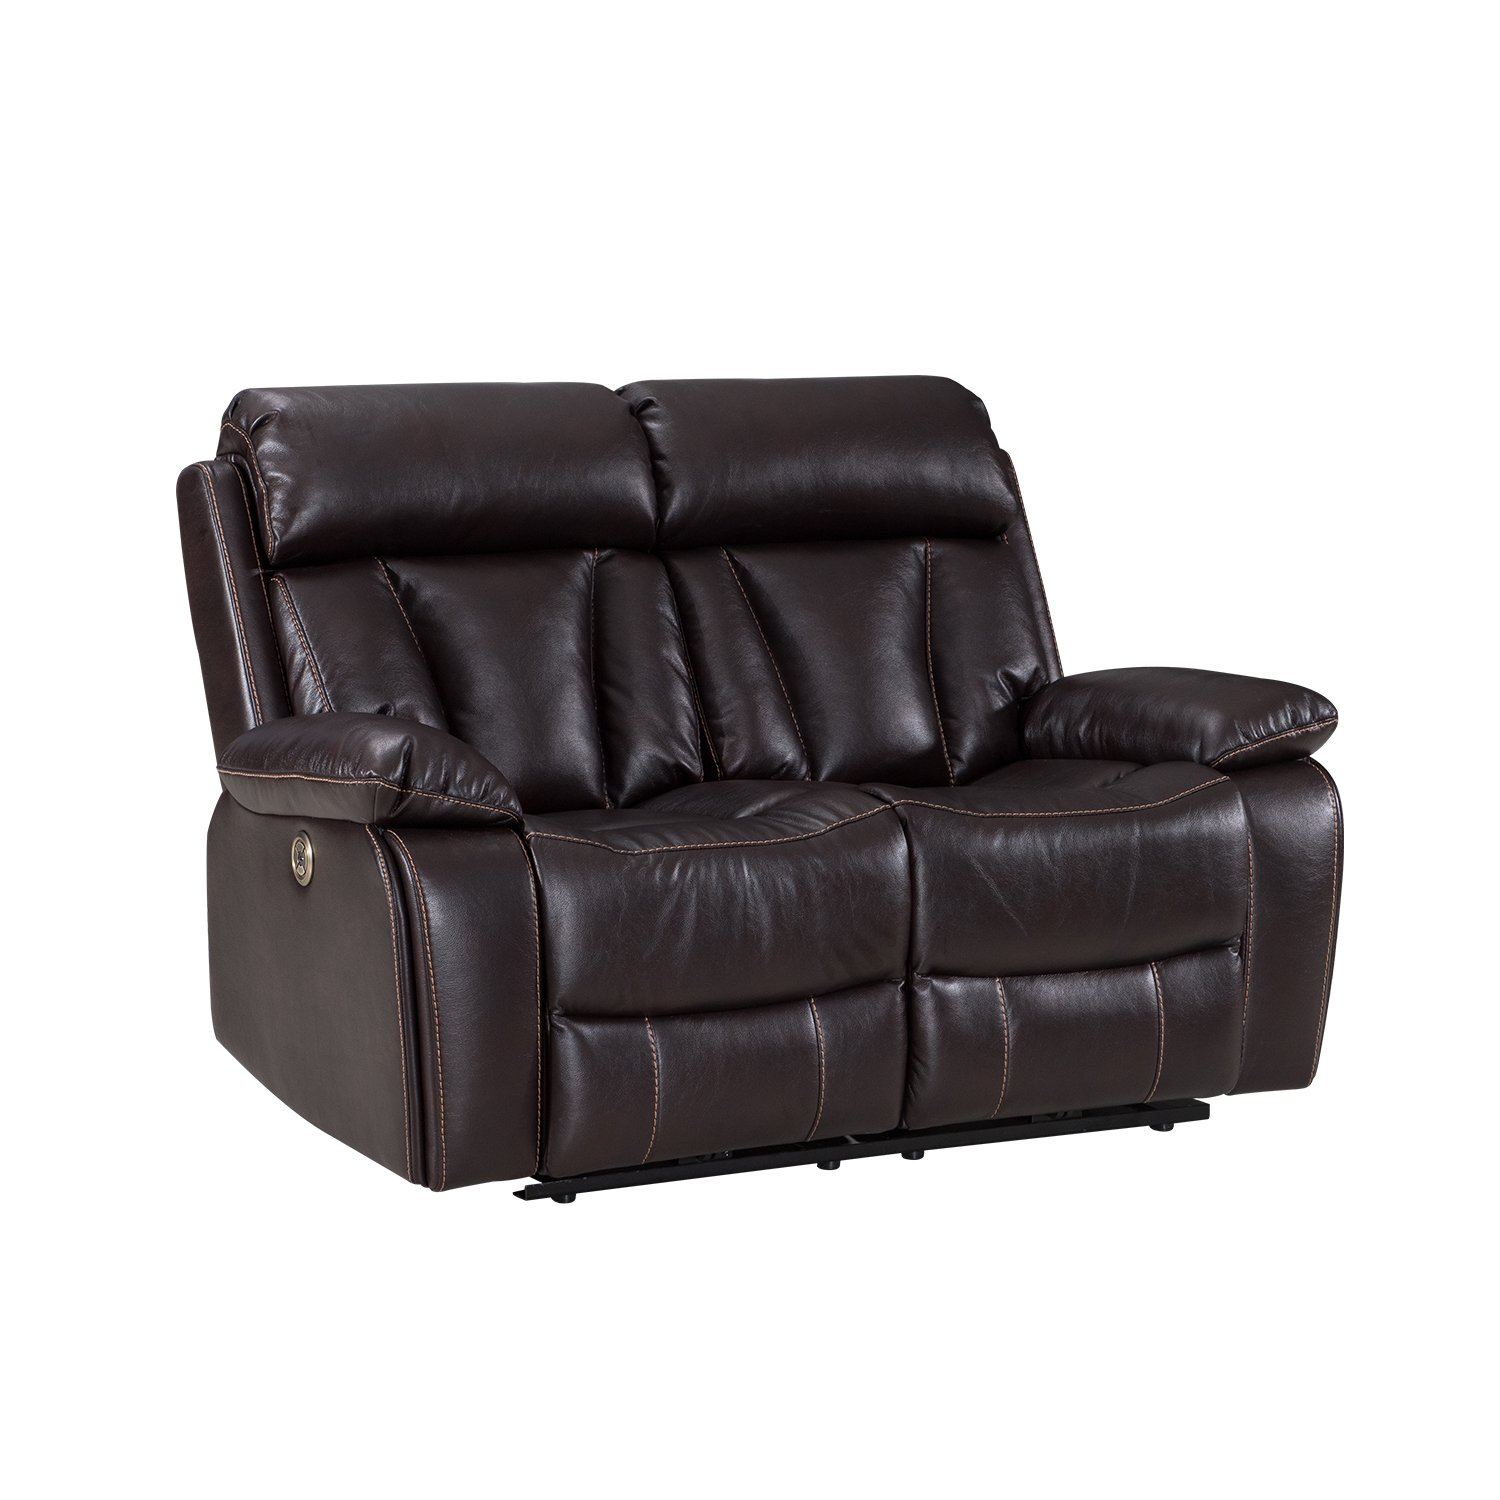 Stupendous Amazon Com Power Recliner Sofa With Usb Charging Port Forskolin Free Trial Chair Design Images Forskolin Free Trialorg